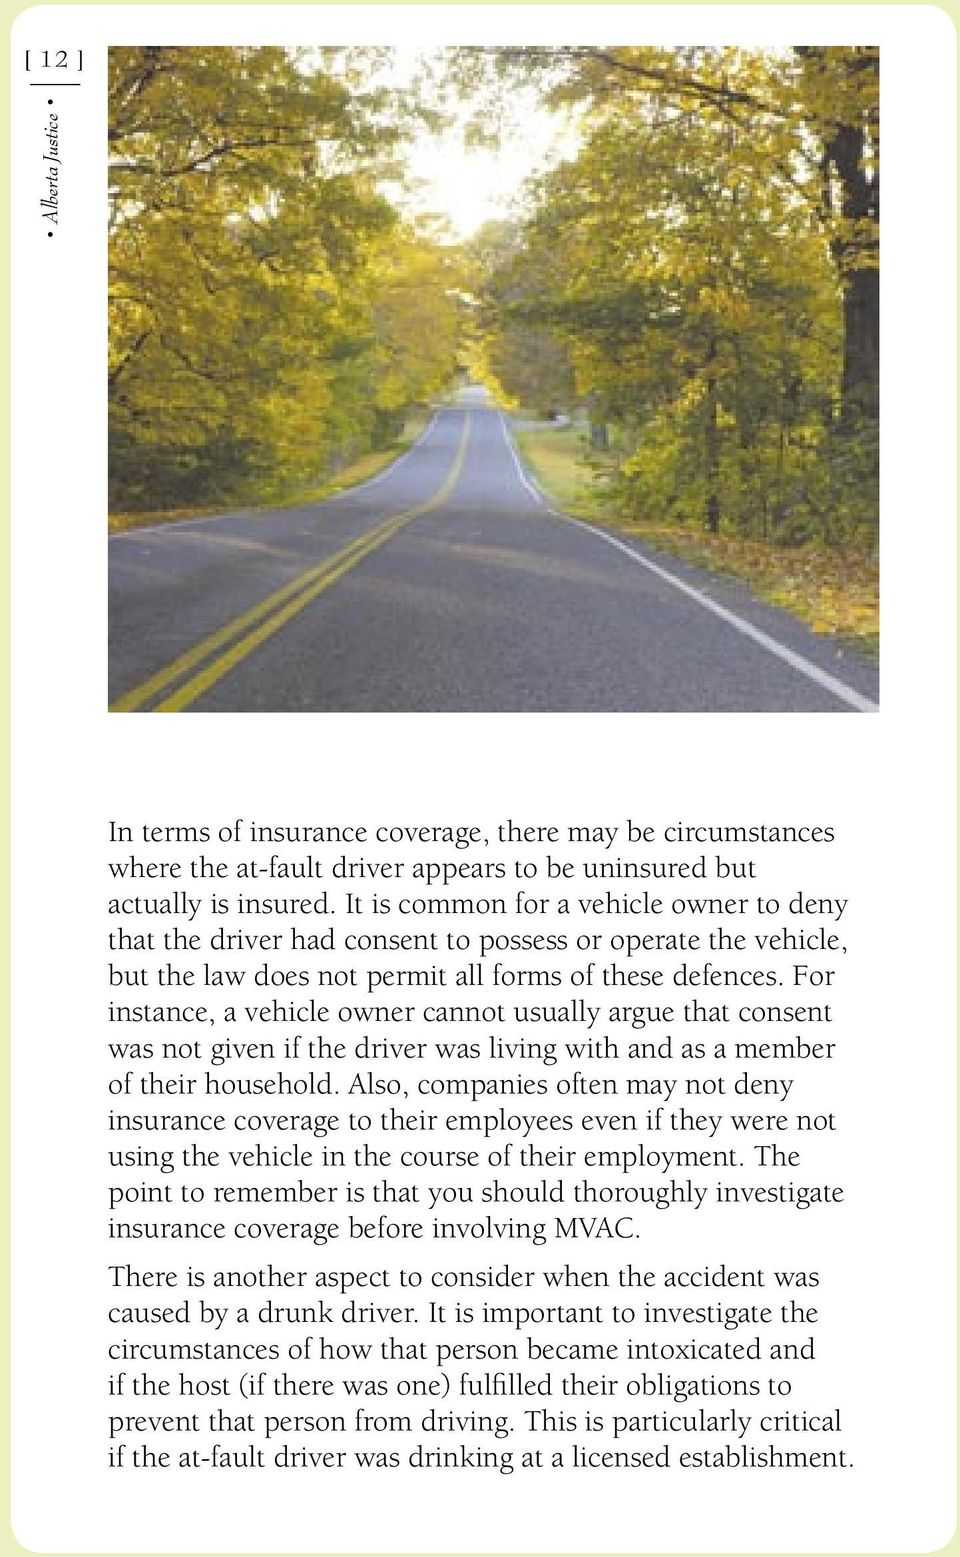 For instance, a vehicle owner cannot usually argue that consent was not given if the driver was living with and as a member of their household.